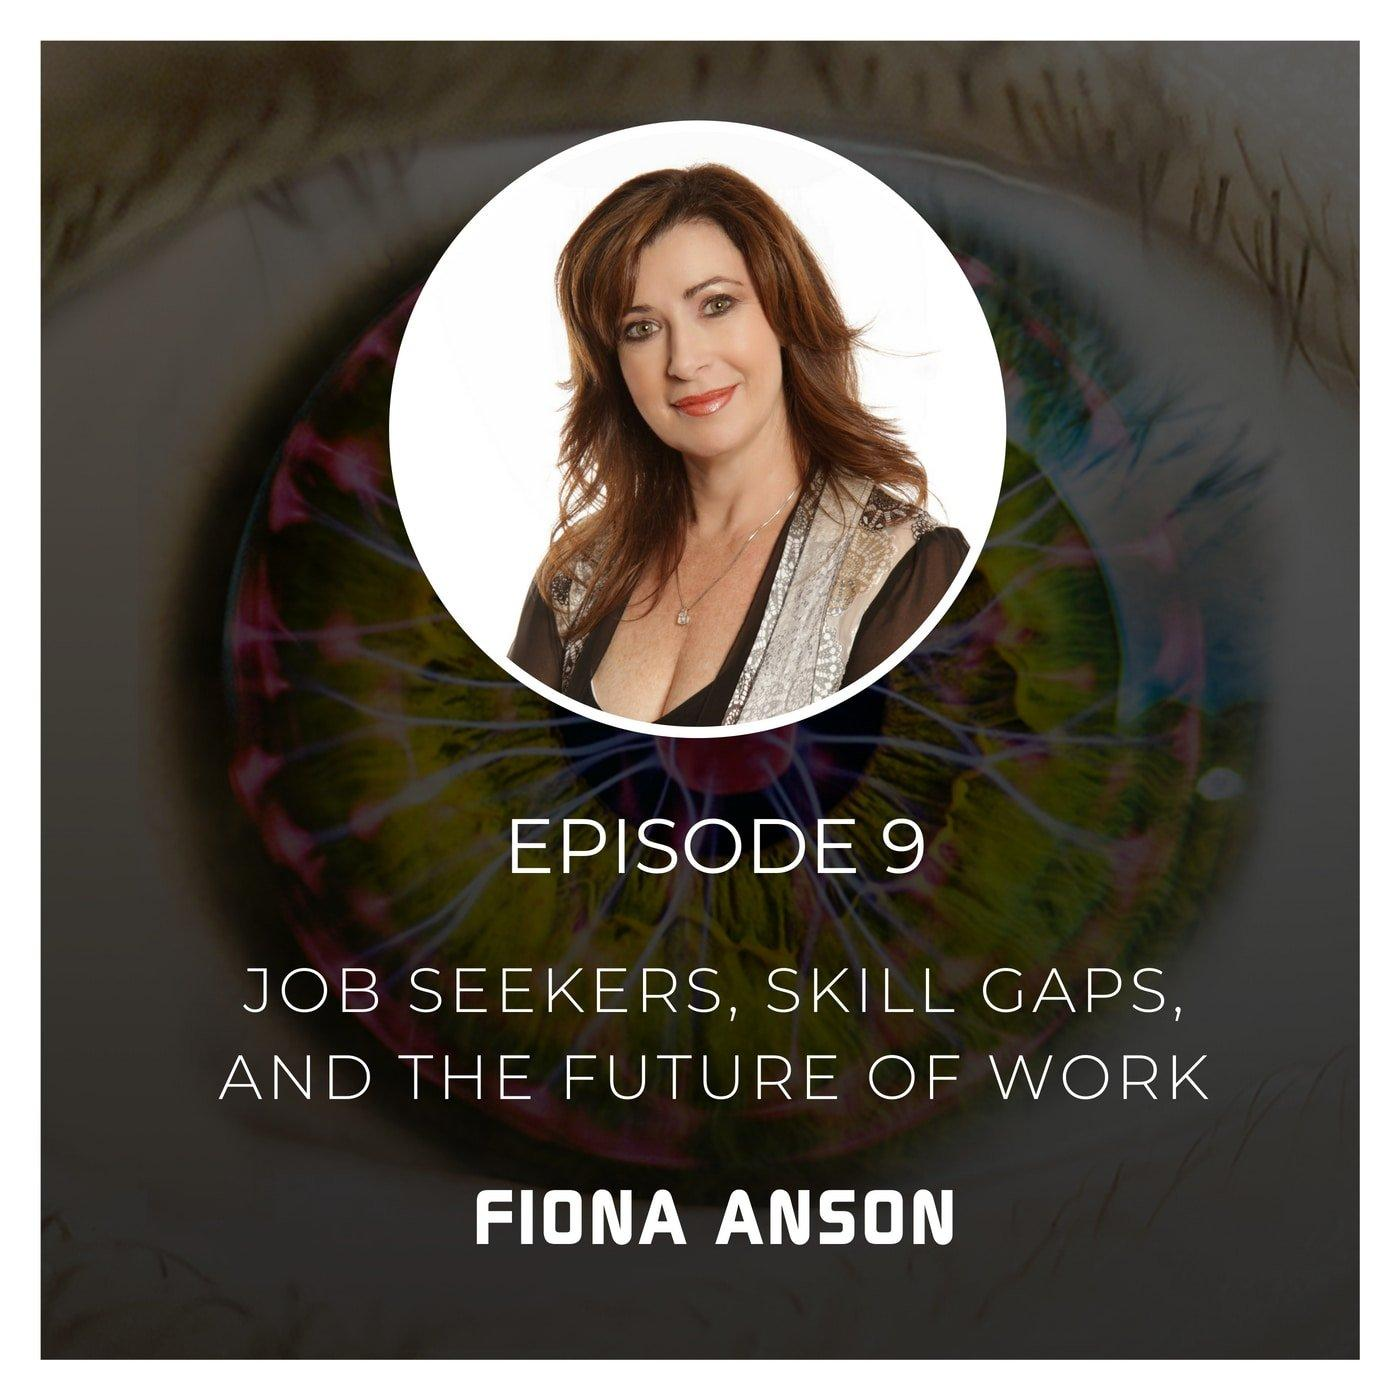 Job Seekers, Skill Gaps, and the Future of Work with Fiona Anson - Episode 9